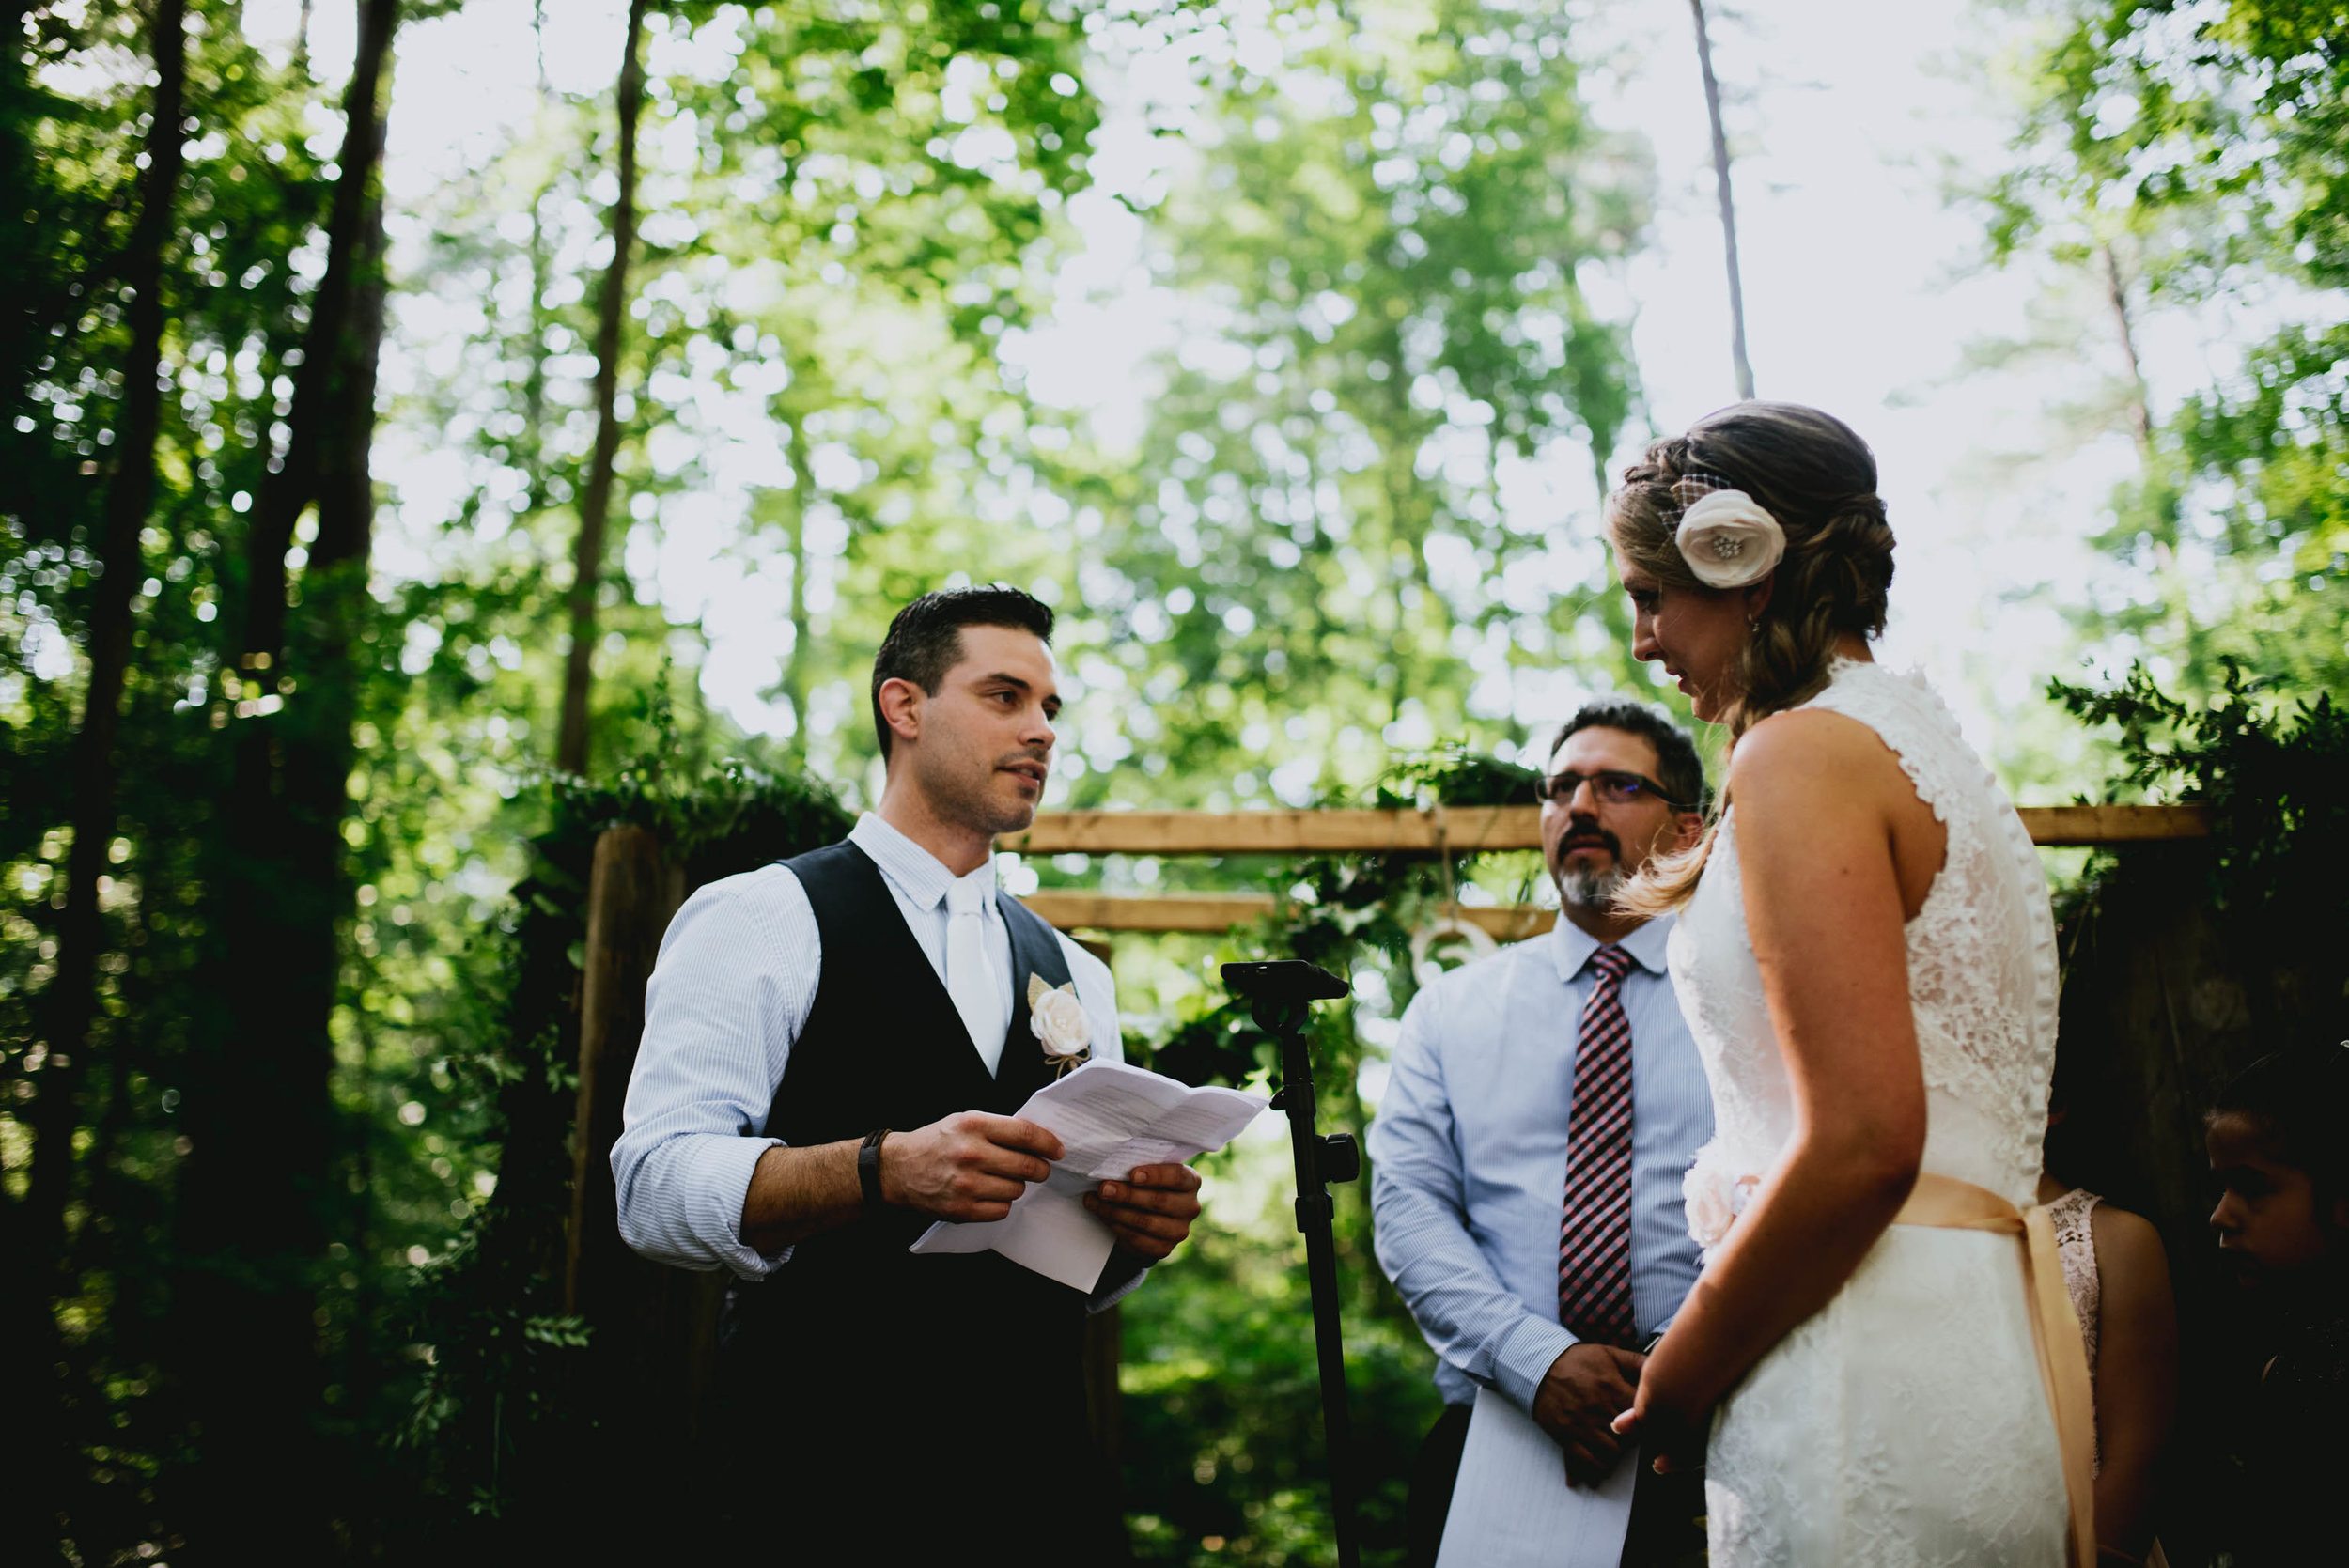 groom reading his vows to his bride during their wedding ceremony